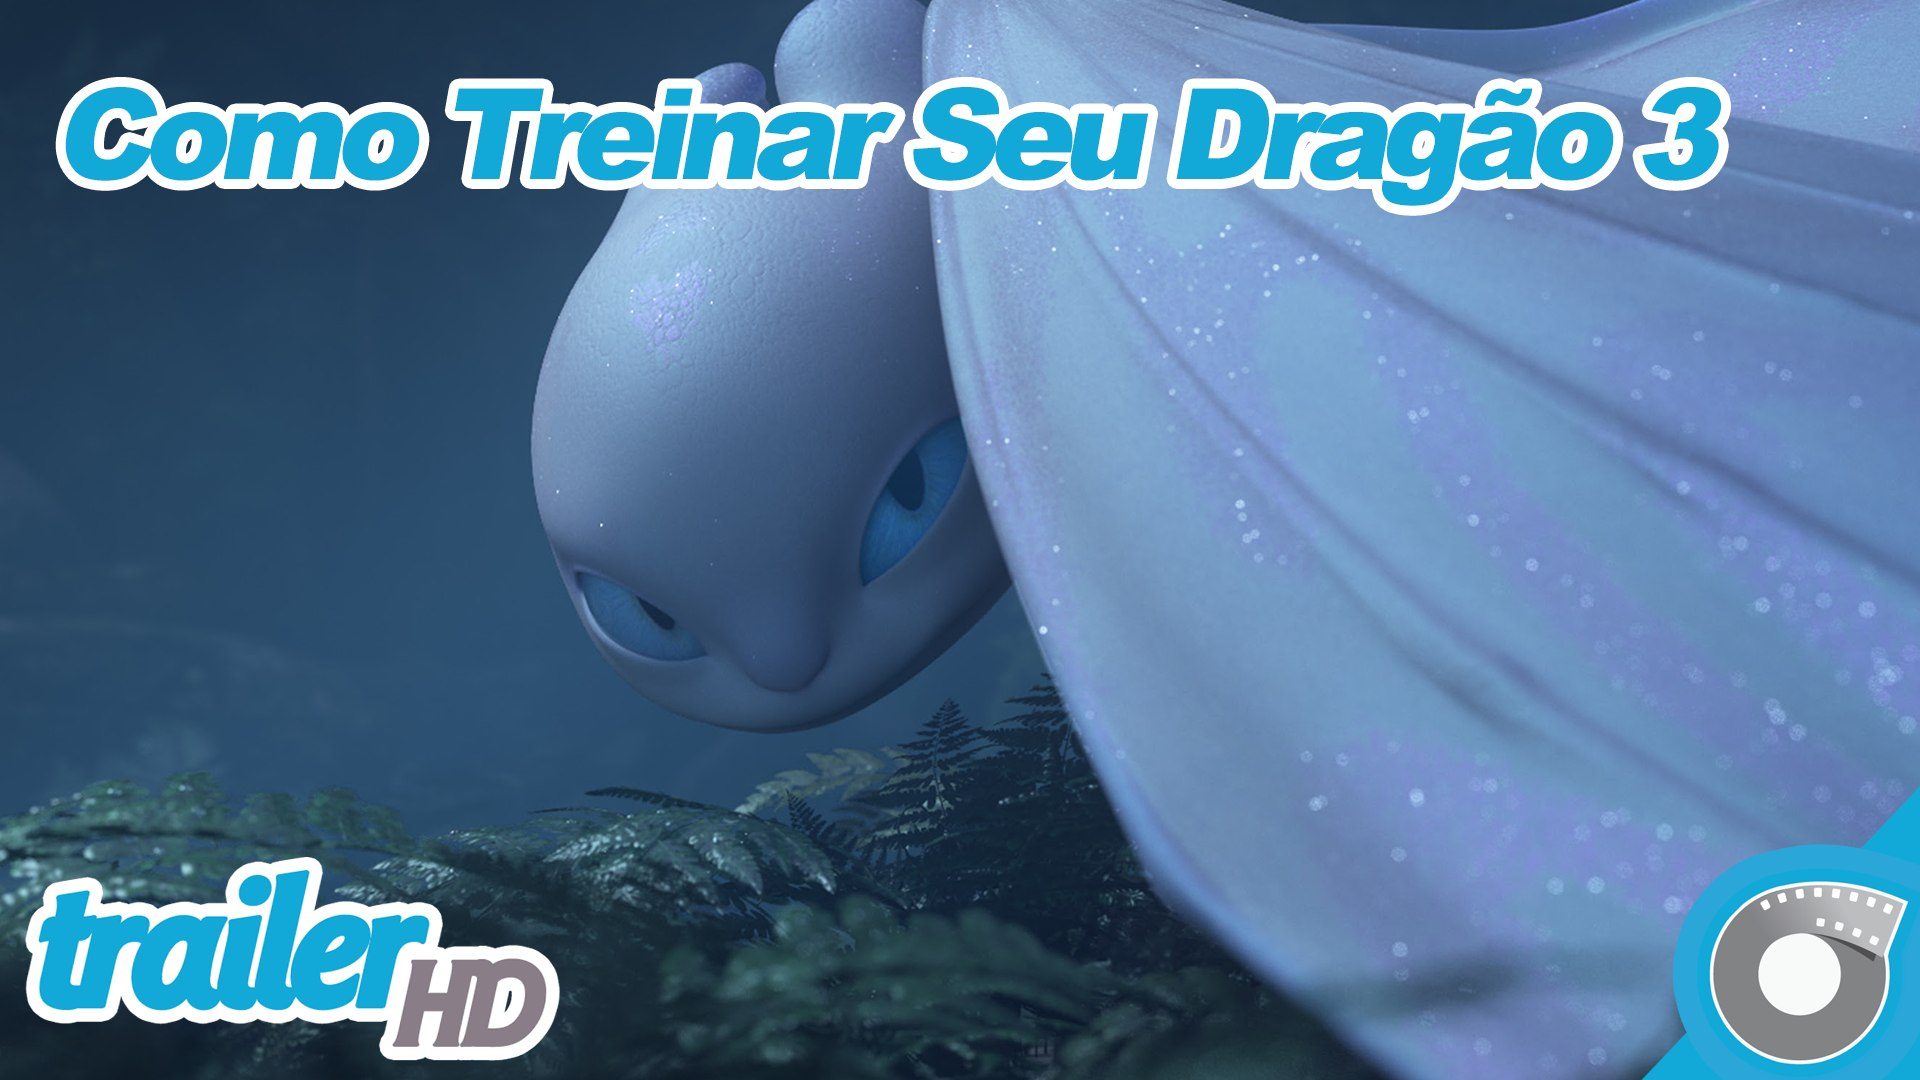 Como Treinar O Seu Dragao 3 Trailer Dublado Hd Video Dailymotion